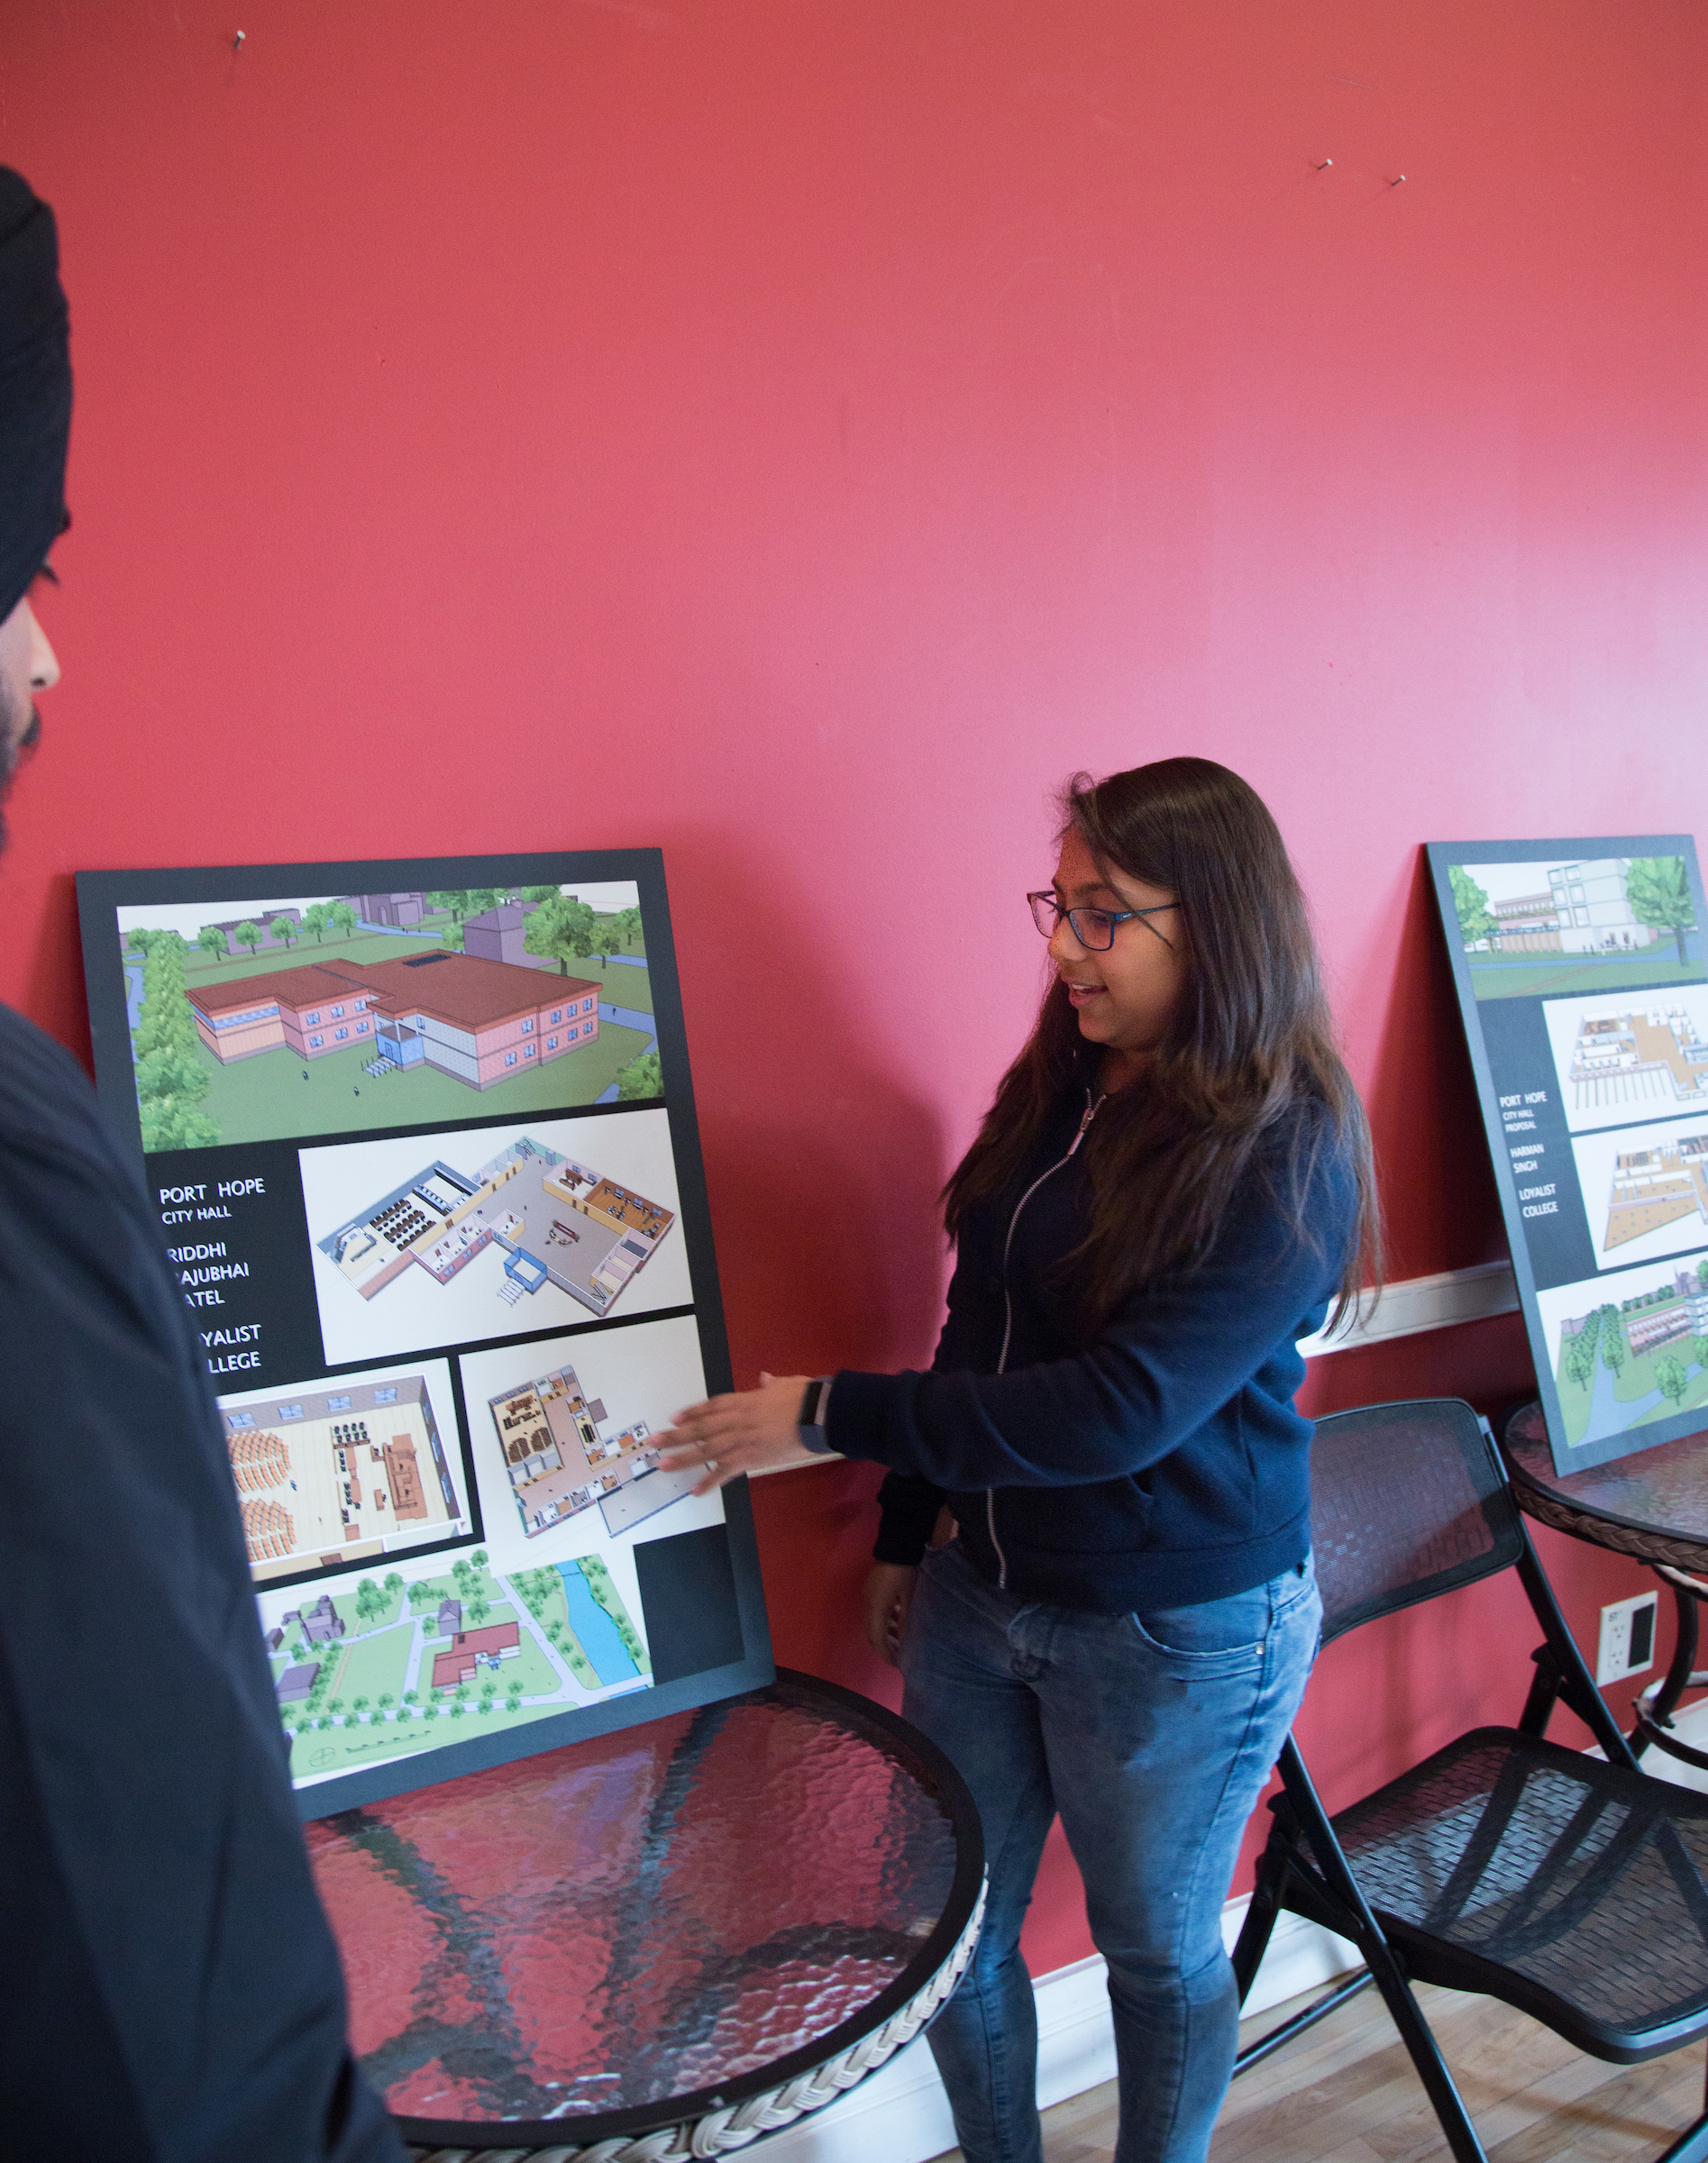 A student in a dark blue sweater and jeans points out features in her architectural drawings. The drawings show landscapes and structures.